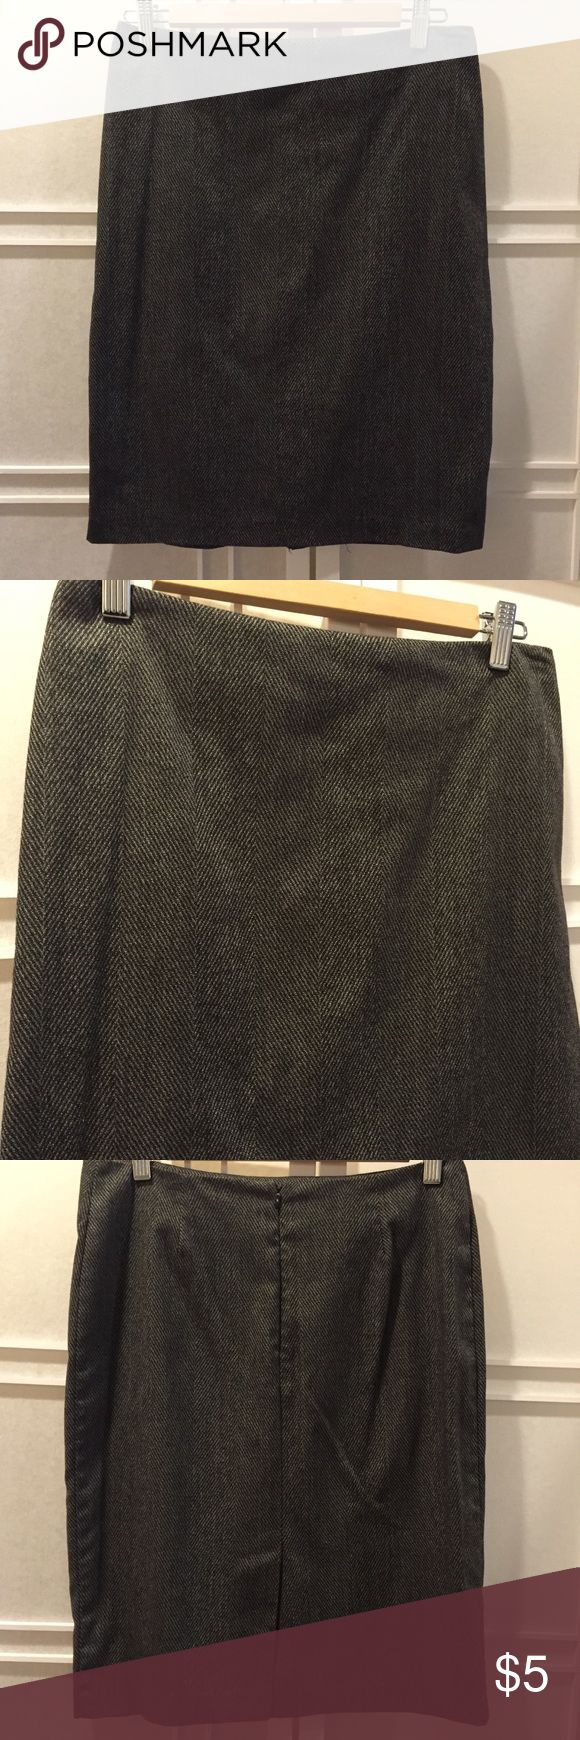 Gray Pencil Skirt Gray pencil skirt, slit on the back, stretchy and fits curves, zips up on the back (latch above zipper broken) New York & Company Skirts Pencil